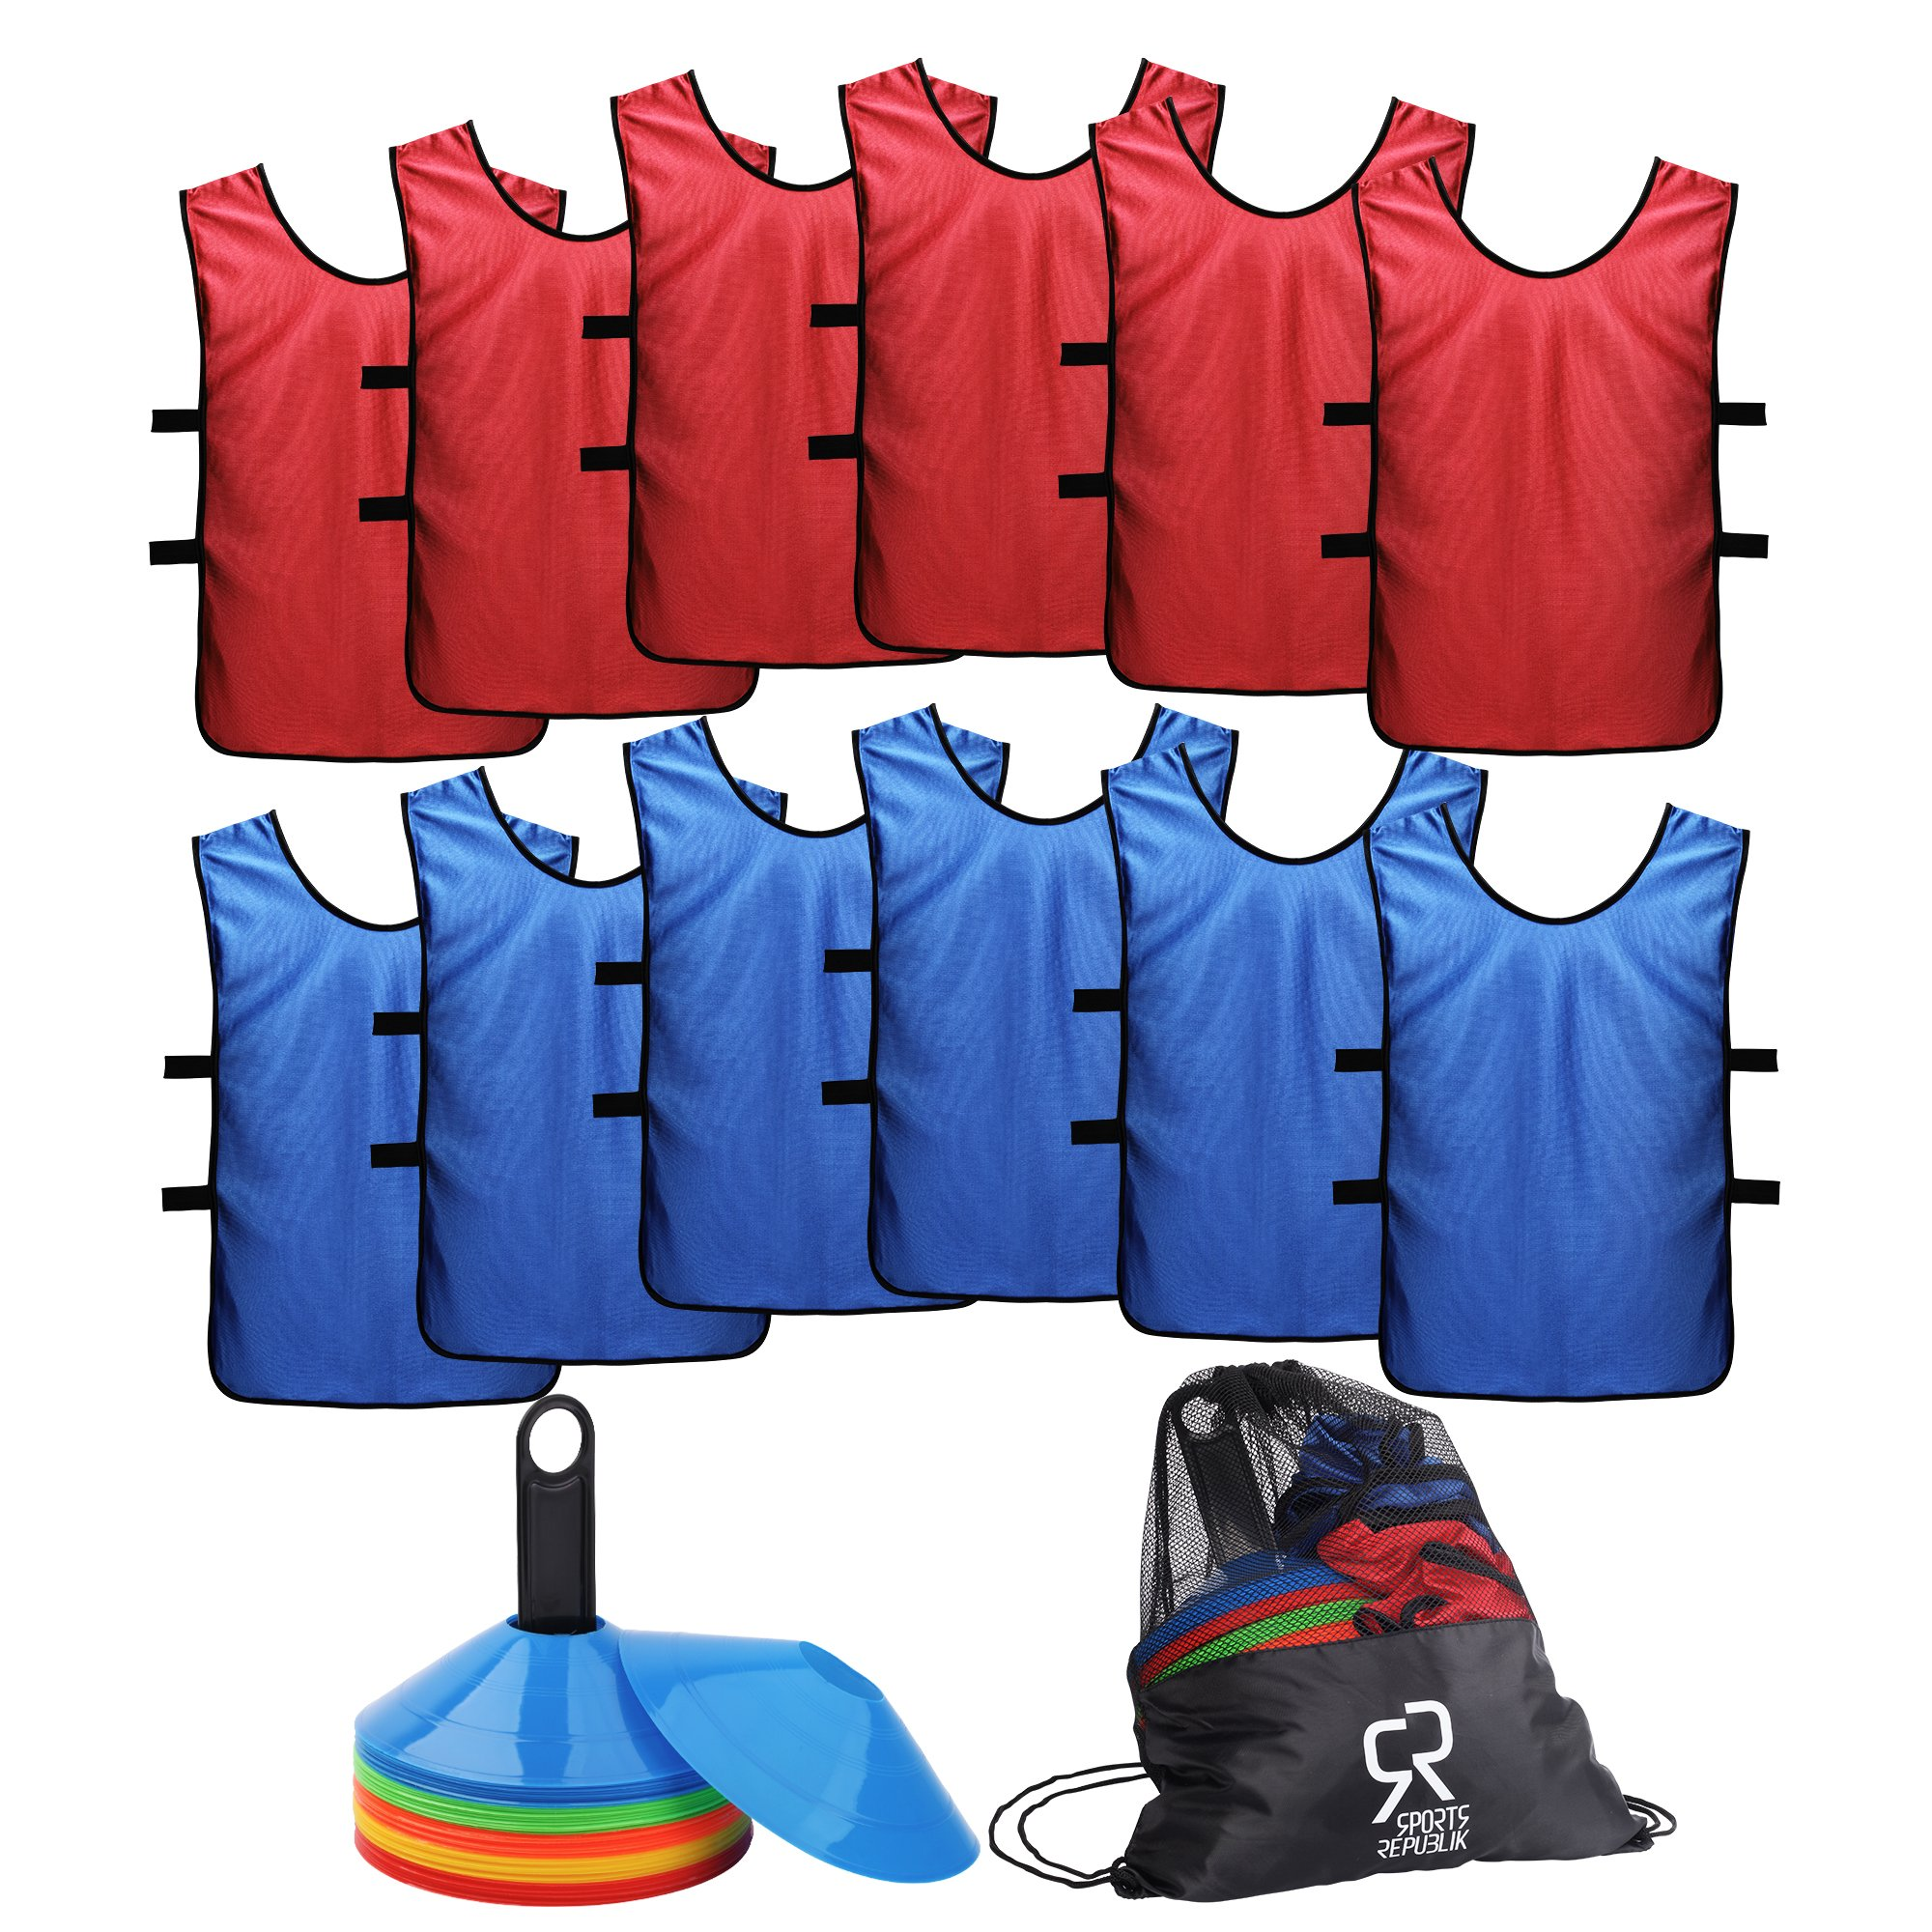 Soccer Cones (Set of 50) and Sports Jerseys Pinnies (12-Pack) - Perfect Disc Cones for Basketball Drills, Complete Soccer Training Equipment by SportsRepublik